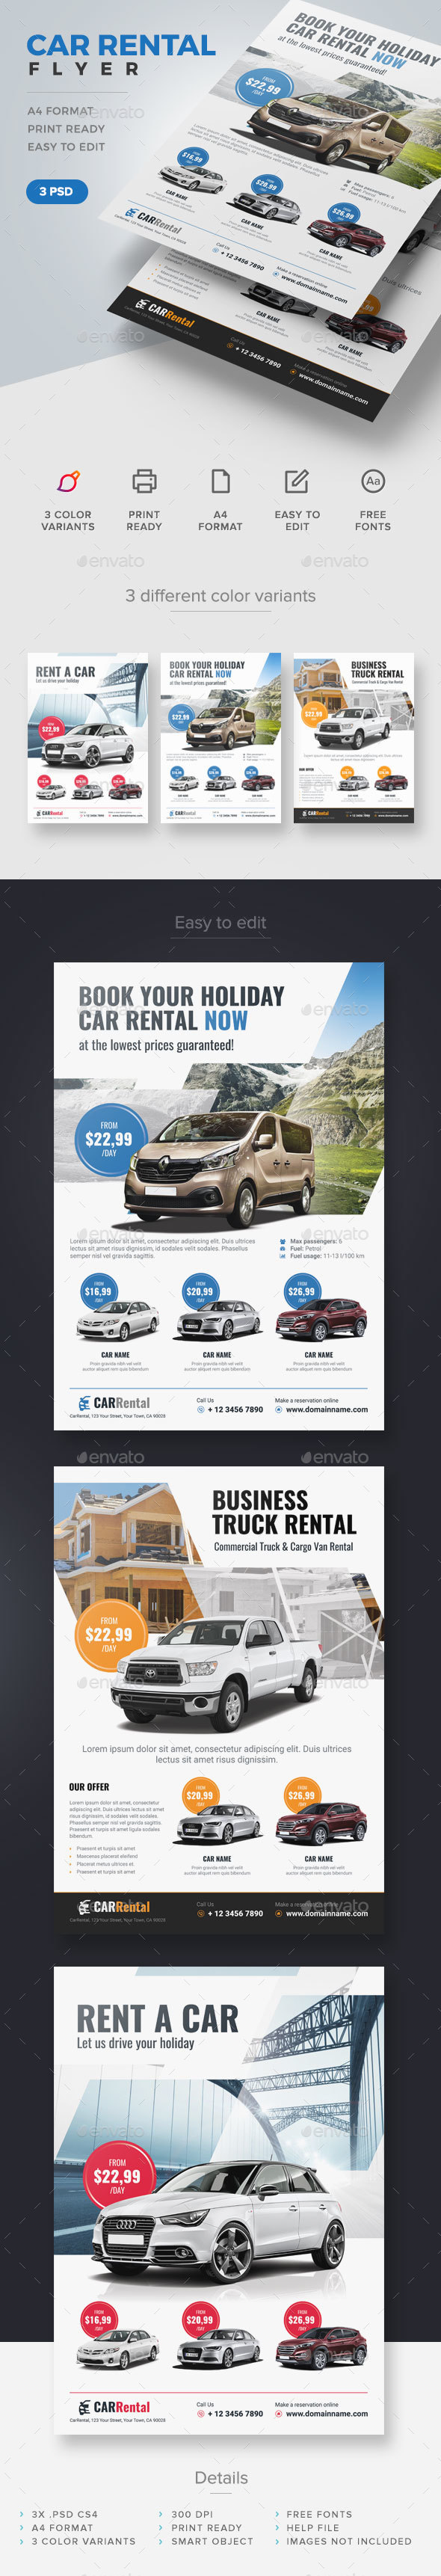 Car Rental Flyer - Corporate Flyers